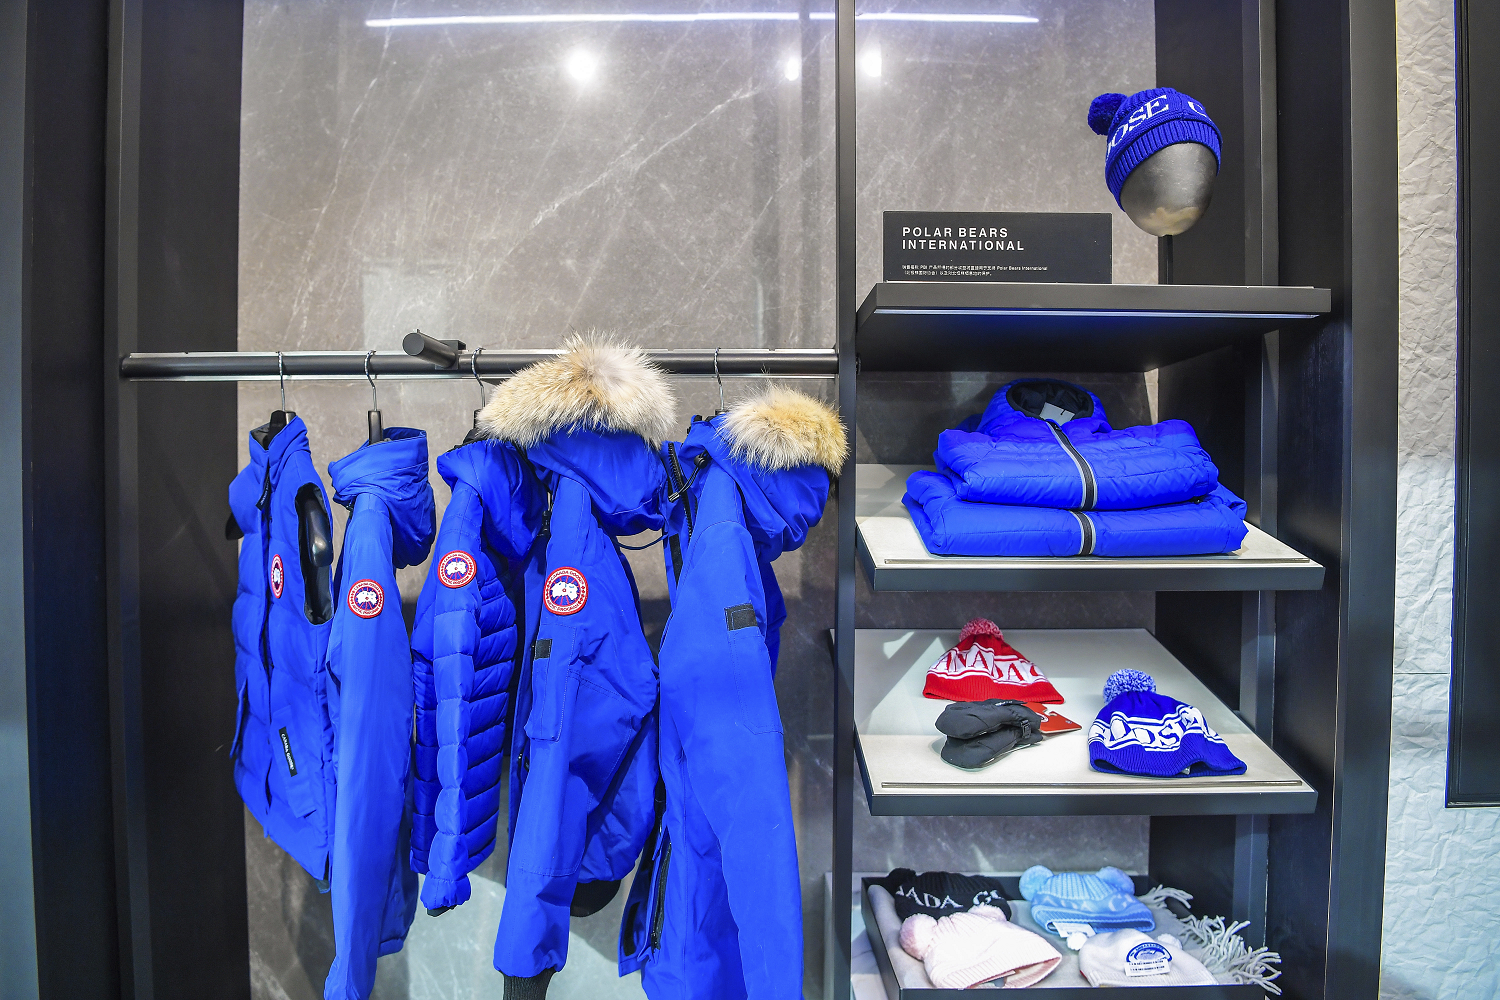 Canada Goose grew year-over-year sales 4.8 percent to $369.2 million, its first sales growth since the onset of the Covid-19 pandemic.